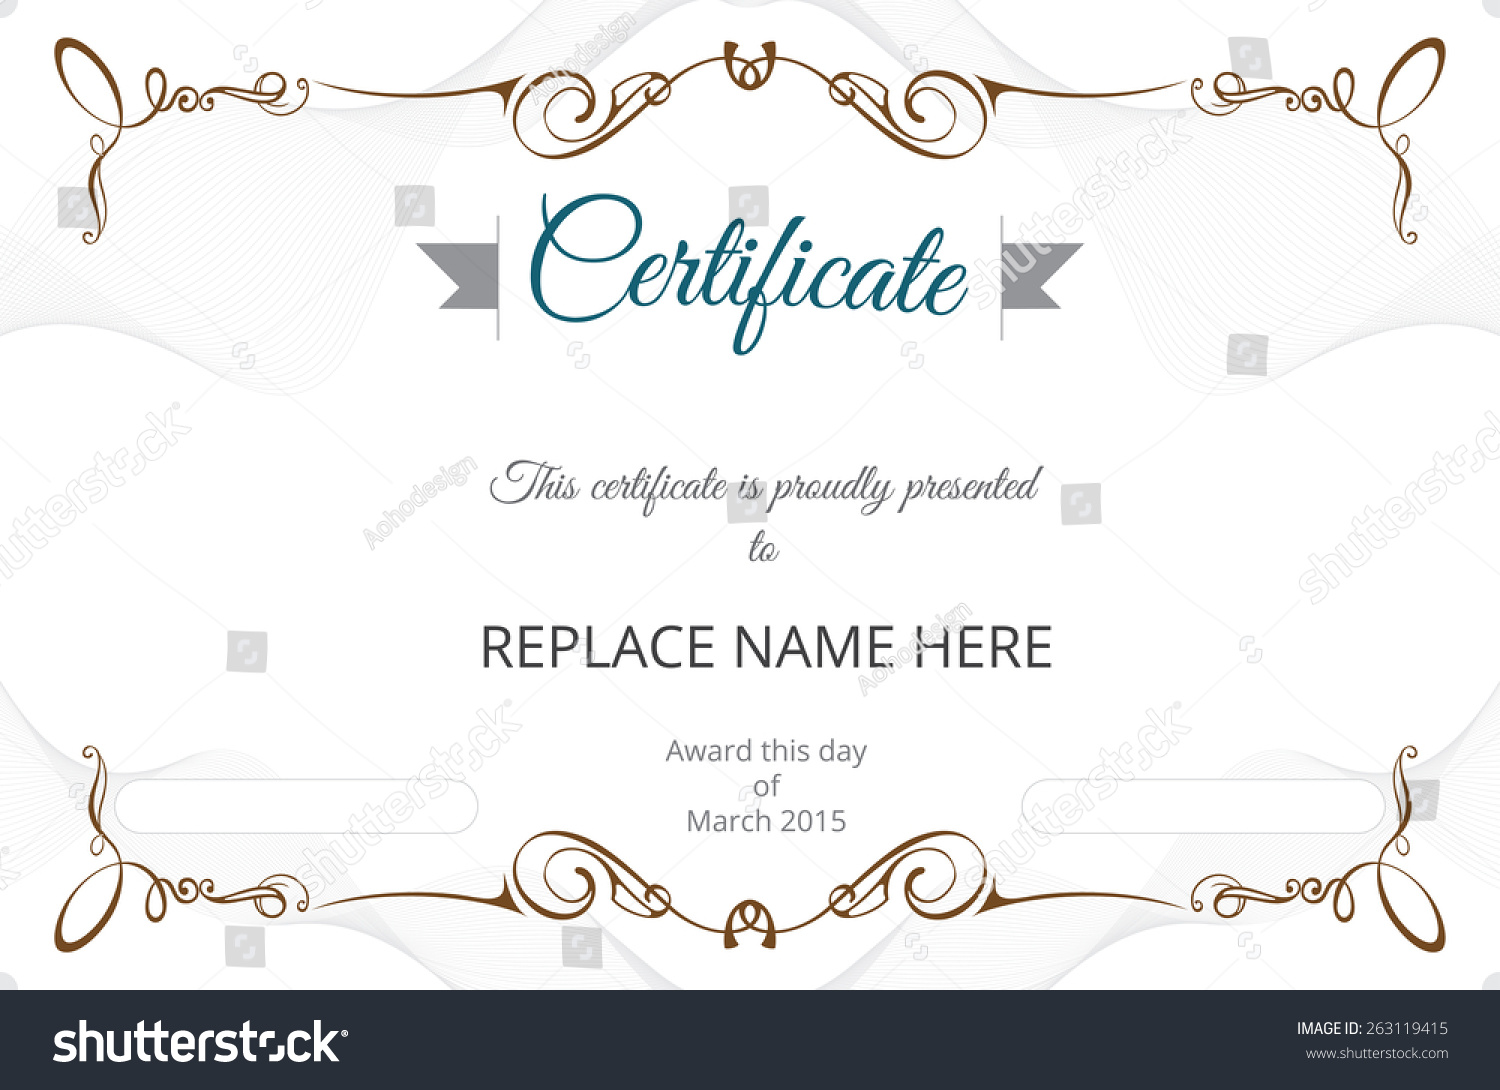 certificate border certificate template vector illustration stock certificate border certificate template vector illustration